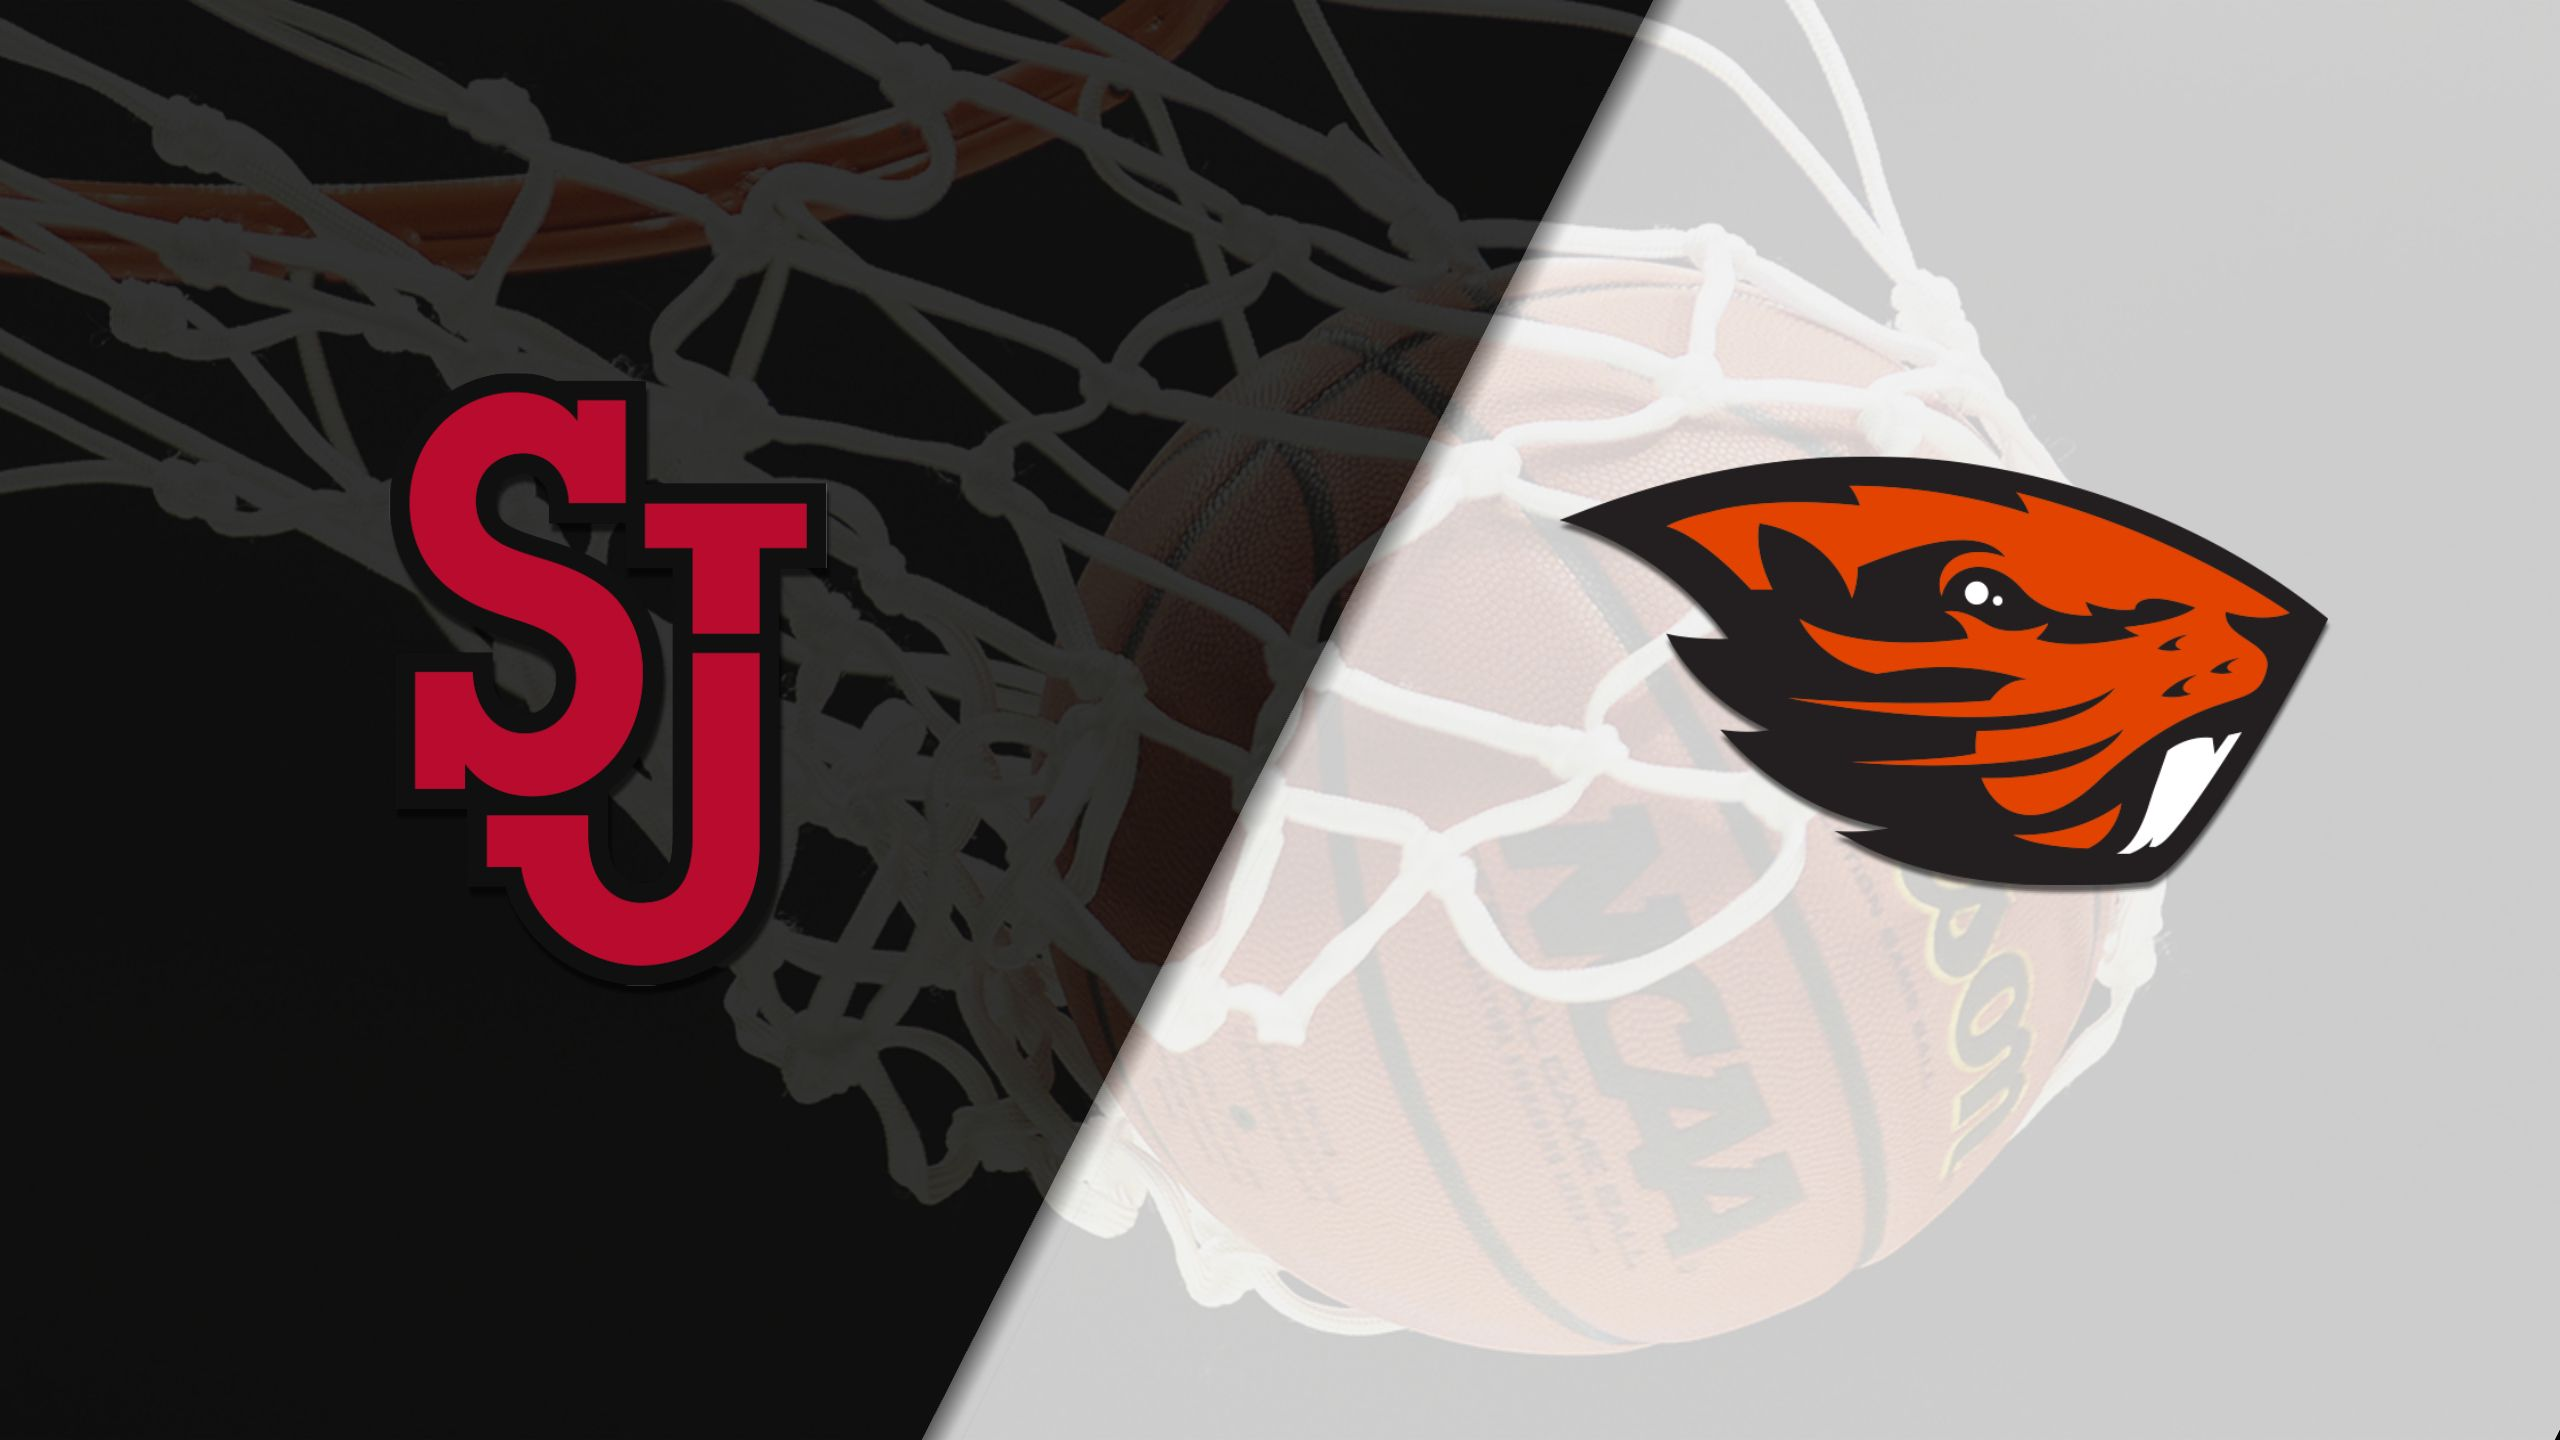 St. John's vs. Oregon State (Quarterfinal #2) (Advocare Invitational)